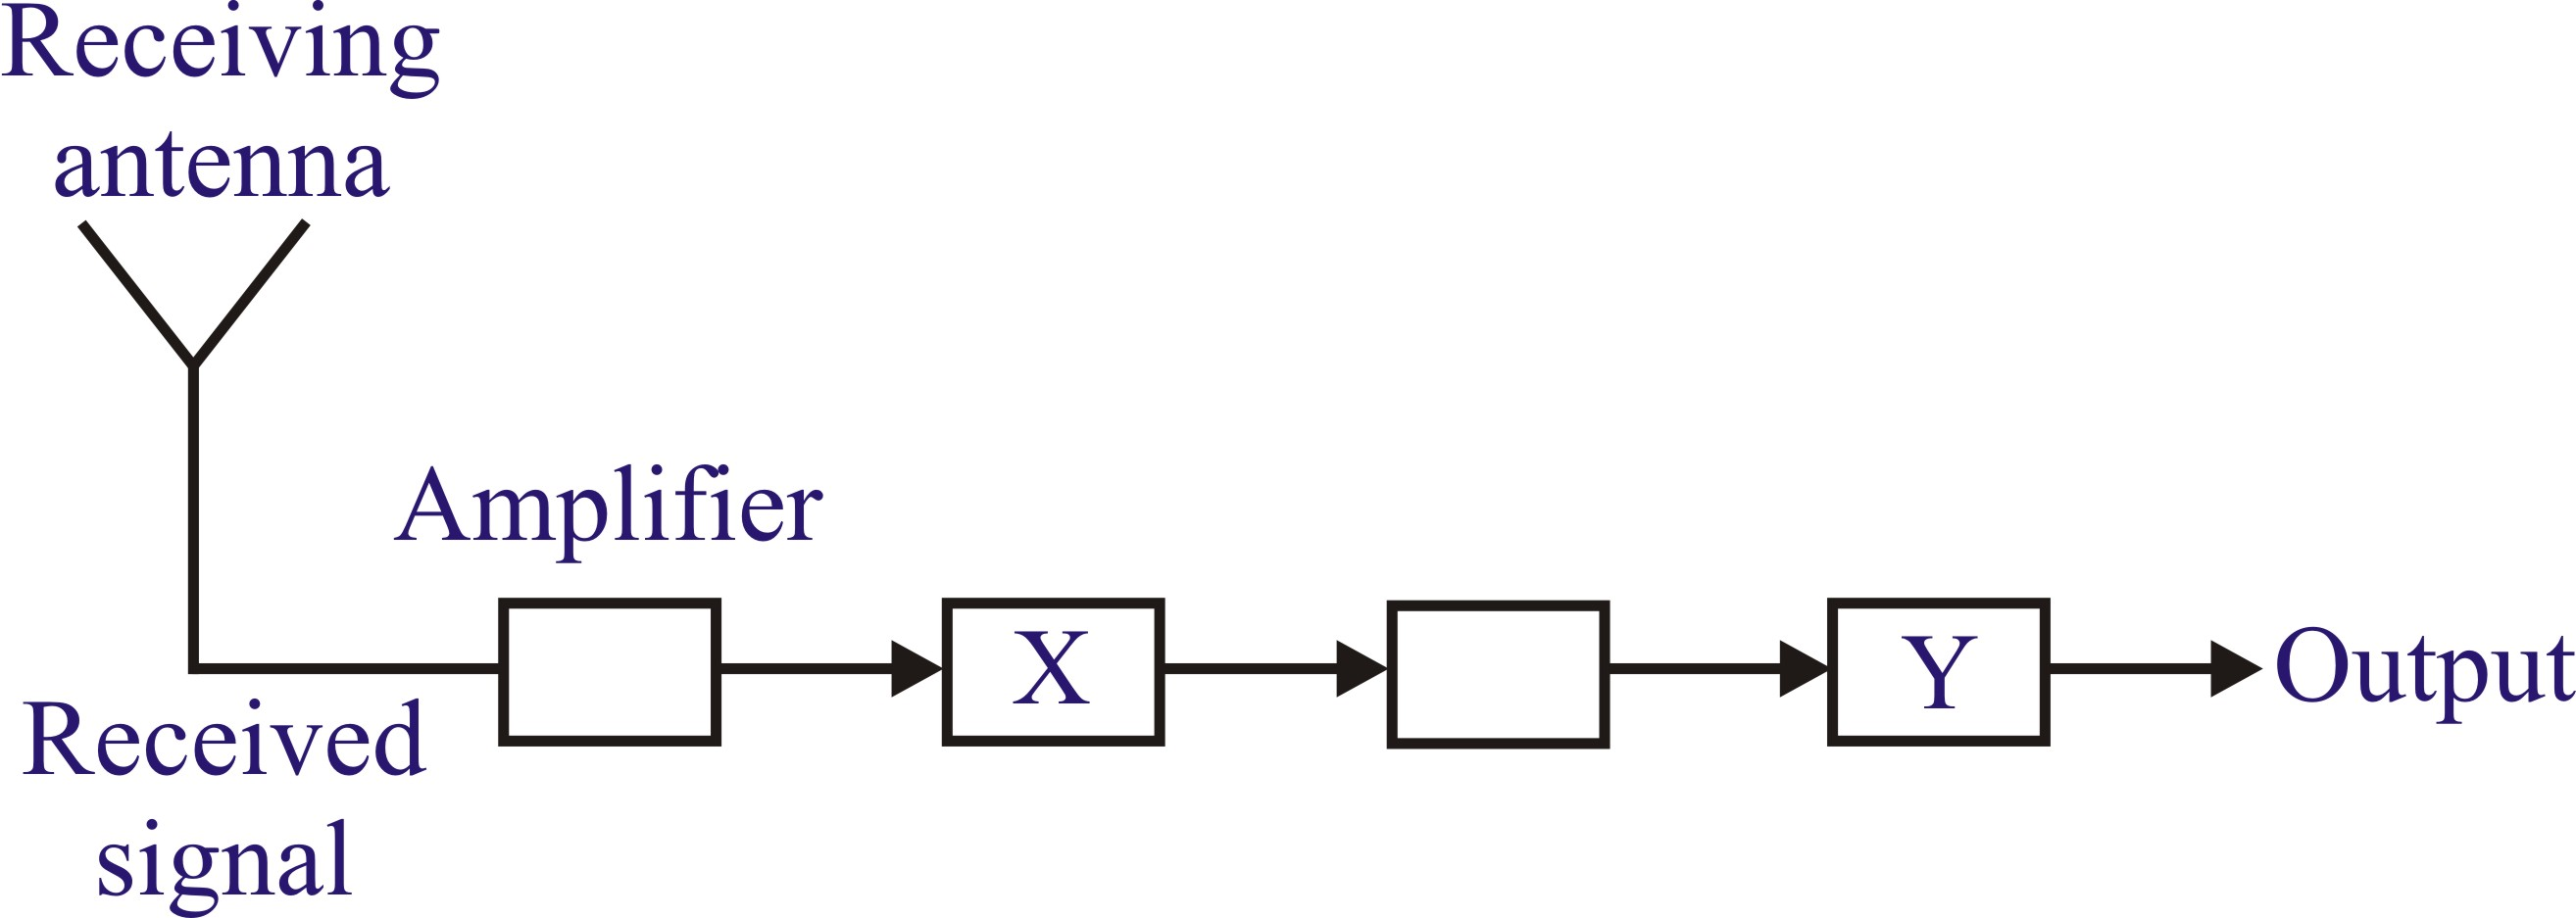 Communication System Previous Years Questions Block Diagram Of Tv Receiver